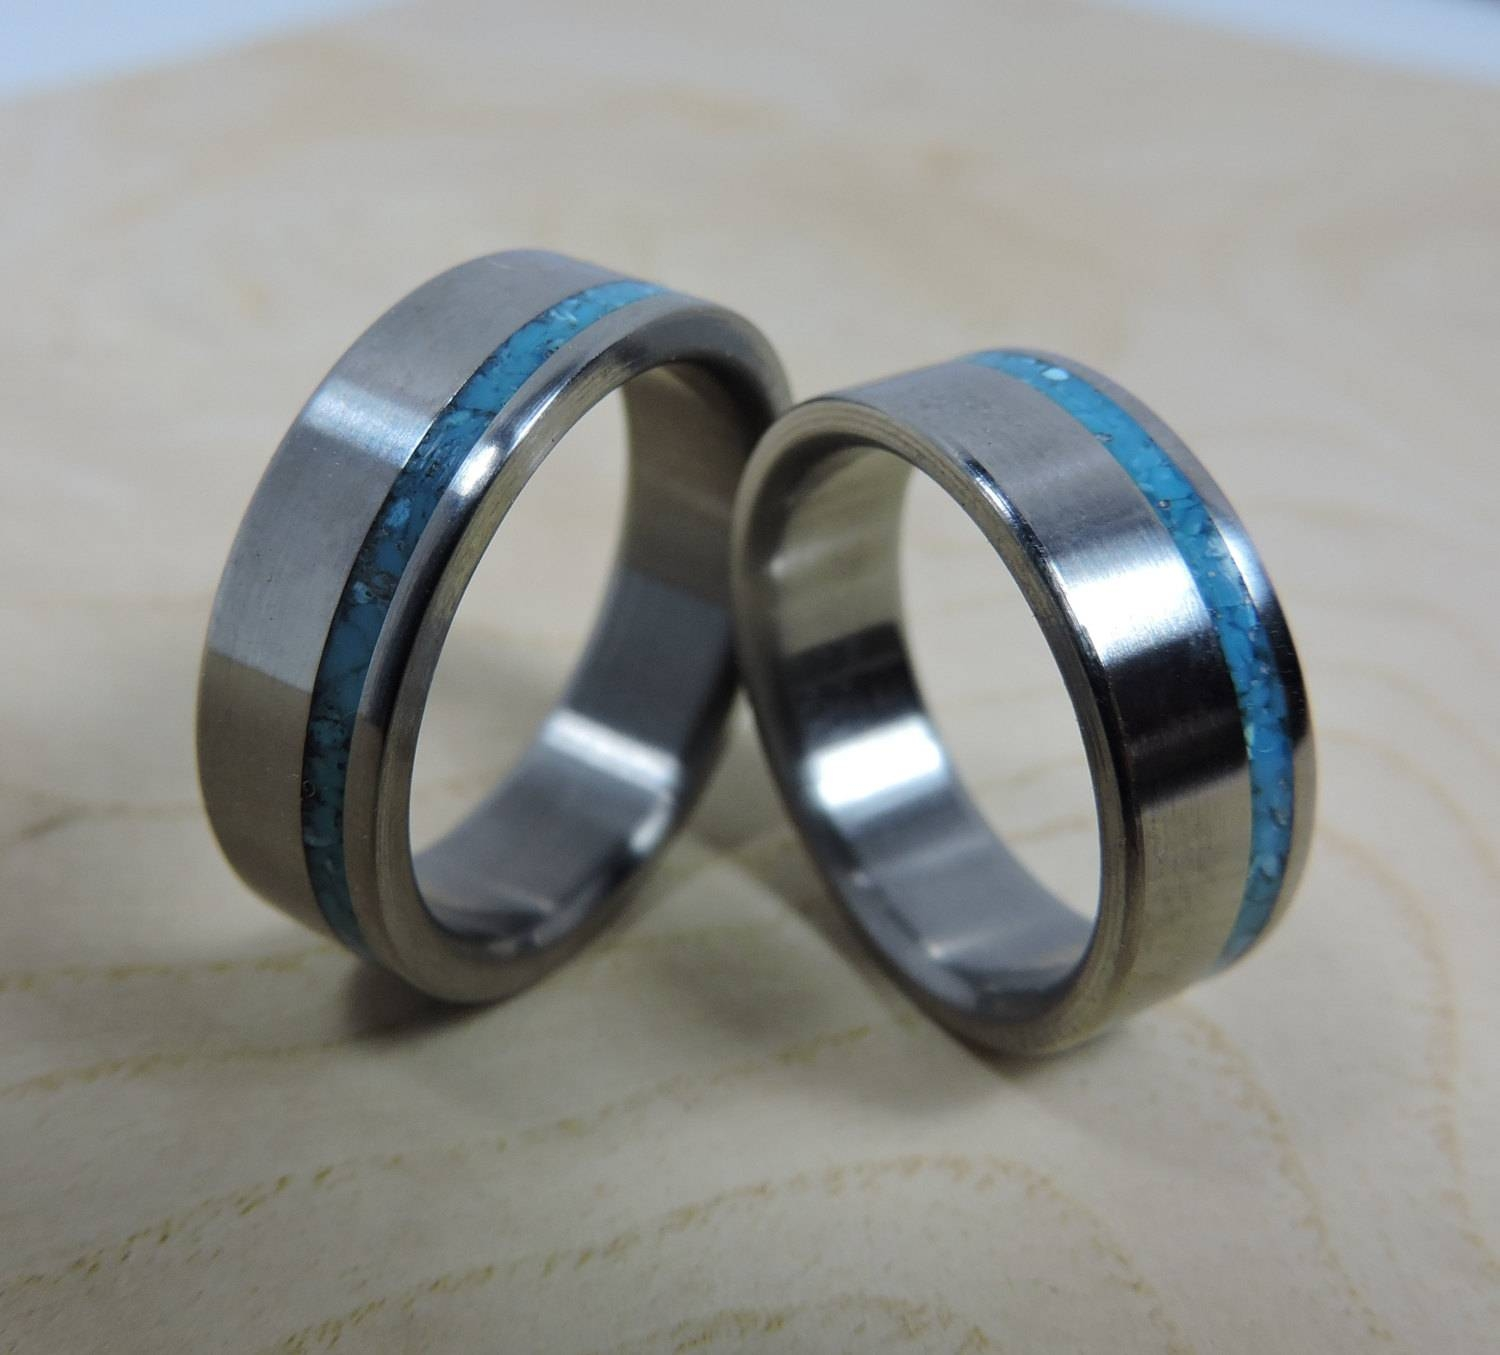 Titanium Rings, Wedding Rings, Turquoise Rings, Wedding Band Set Regarding Black Titanium Wedding Bands Sets (View 12 of 15)